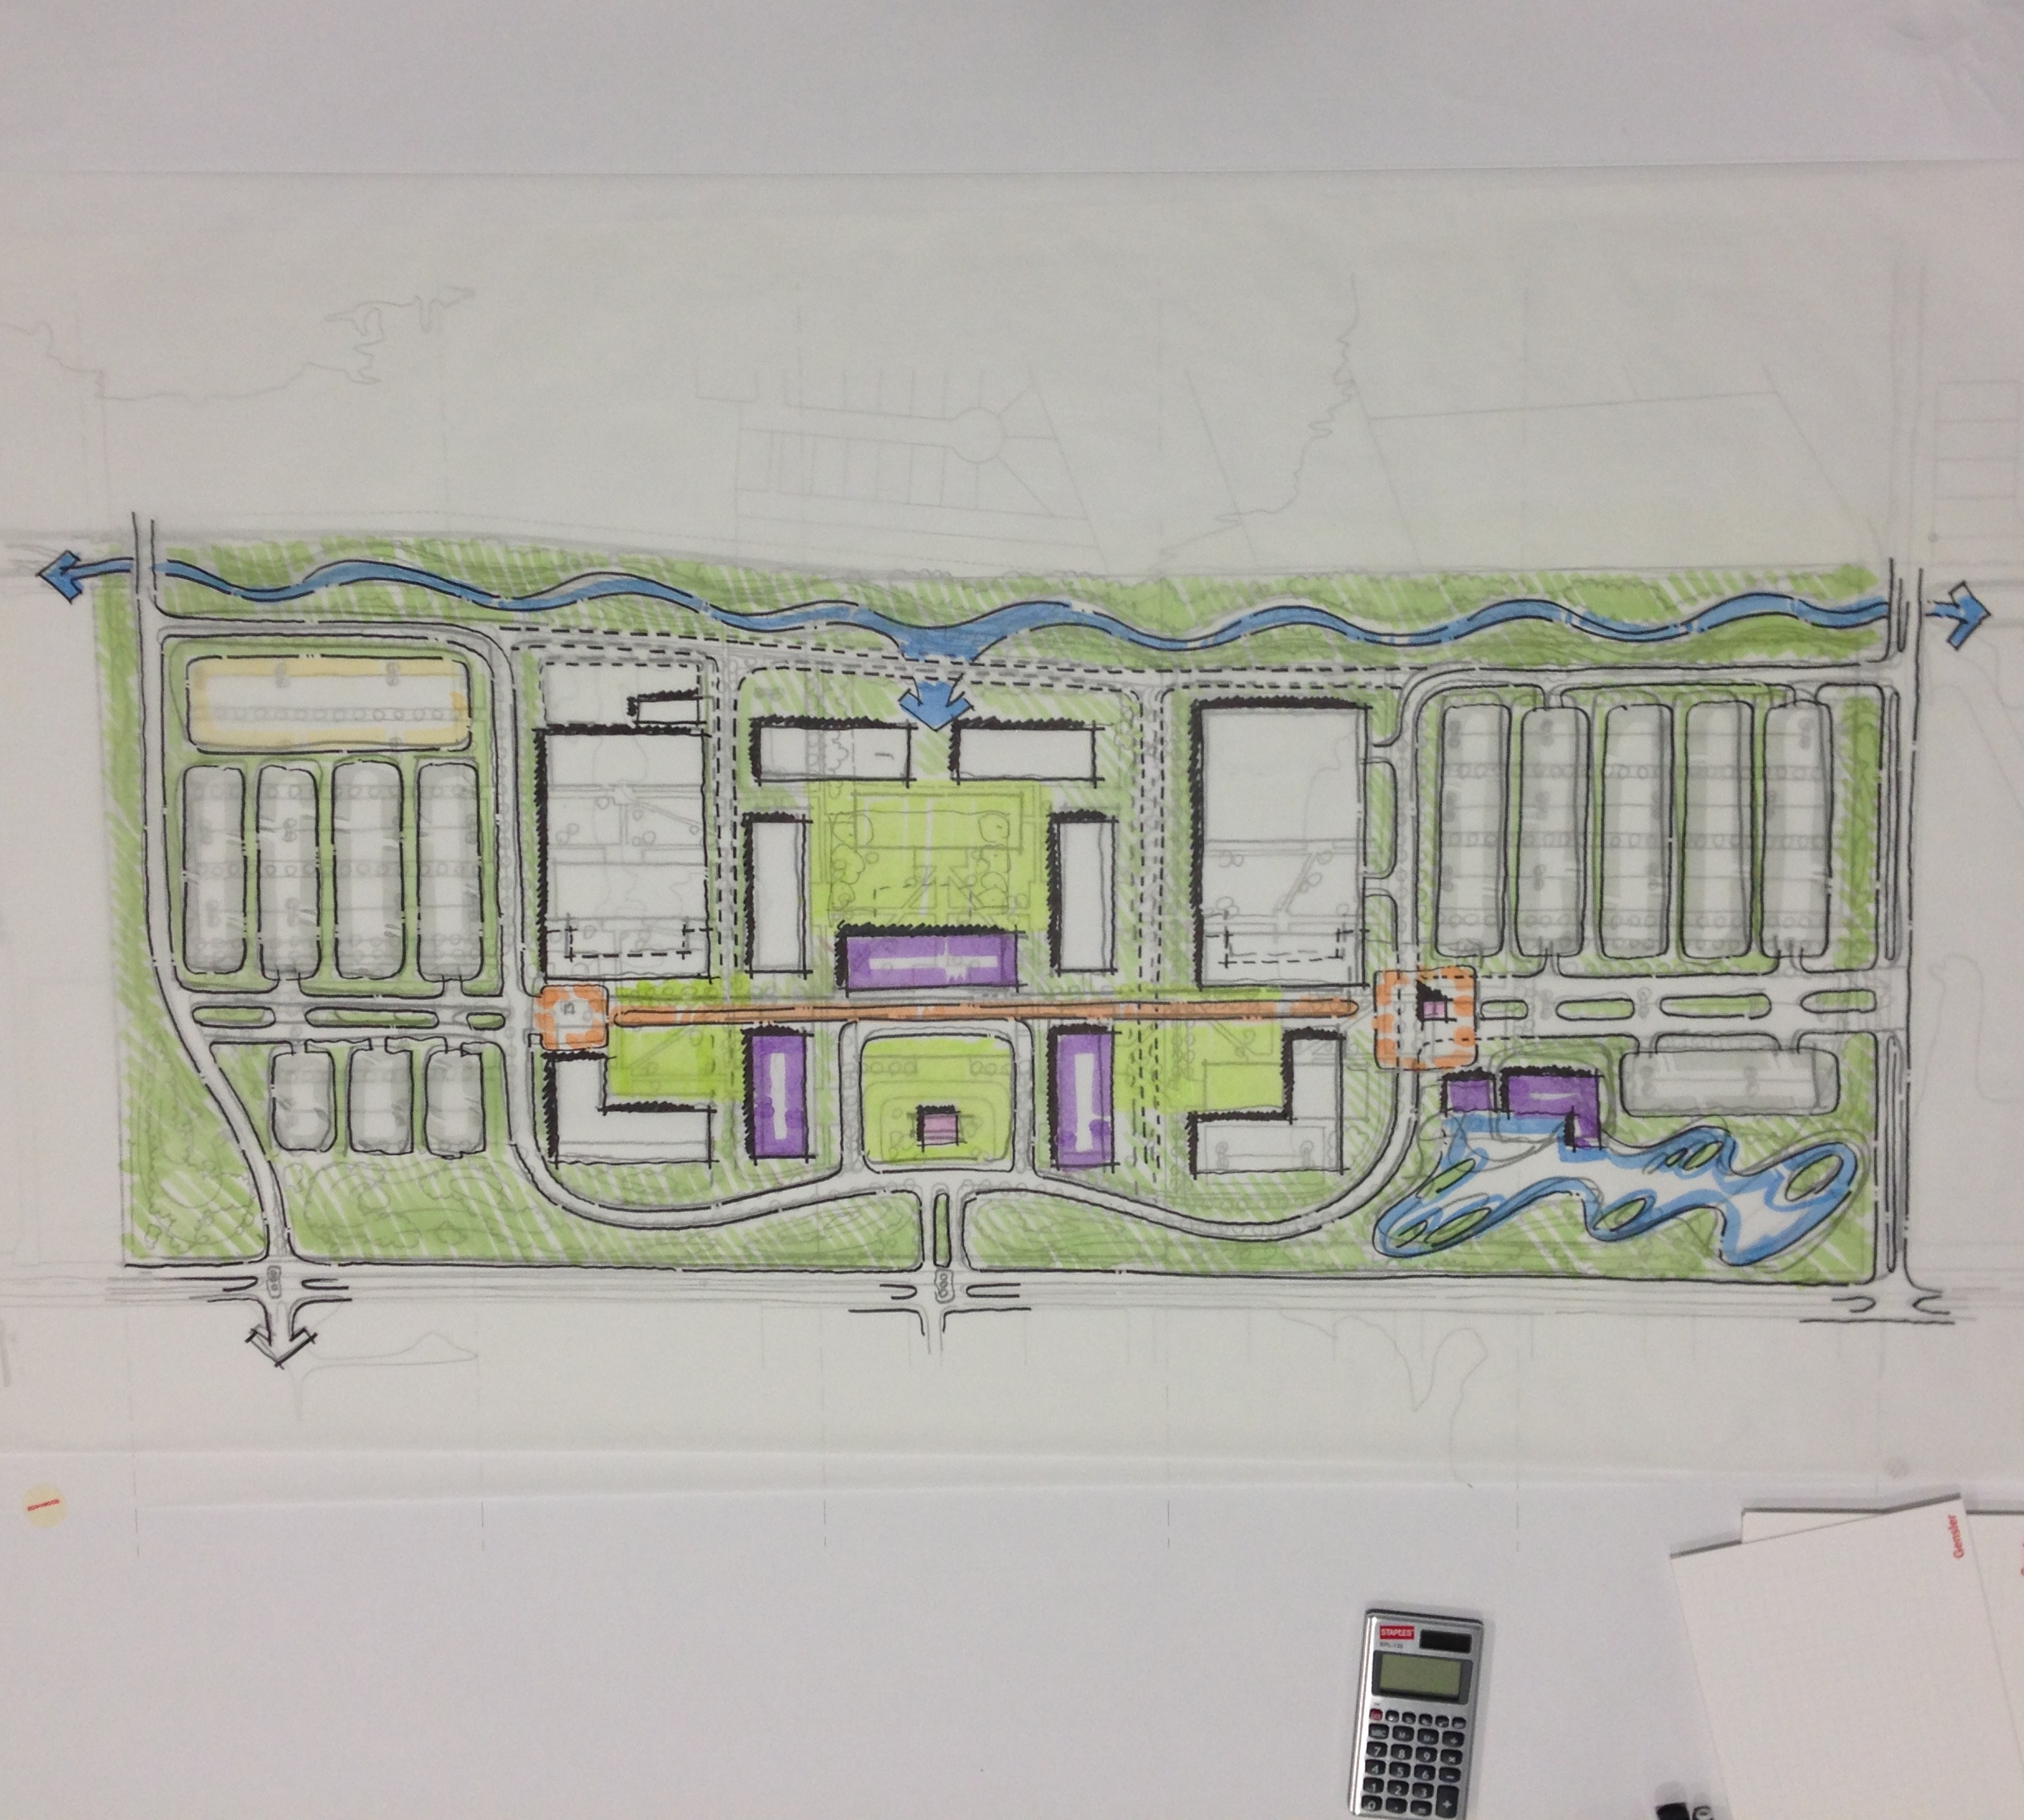 On Site Sketch of composite from the ideas that came out of the discussions.